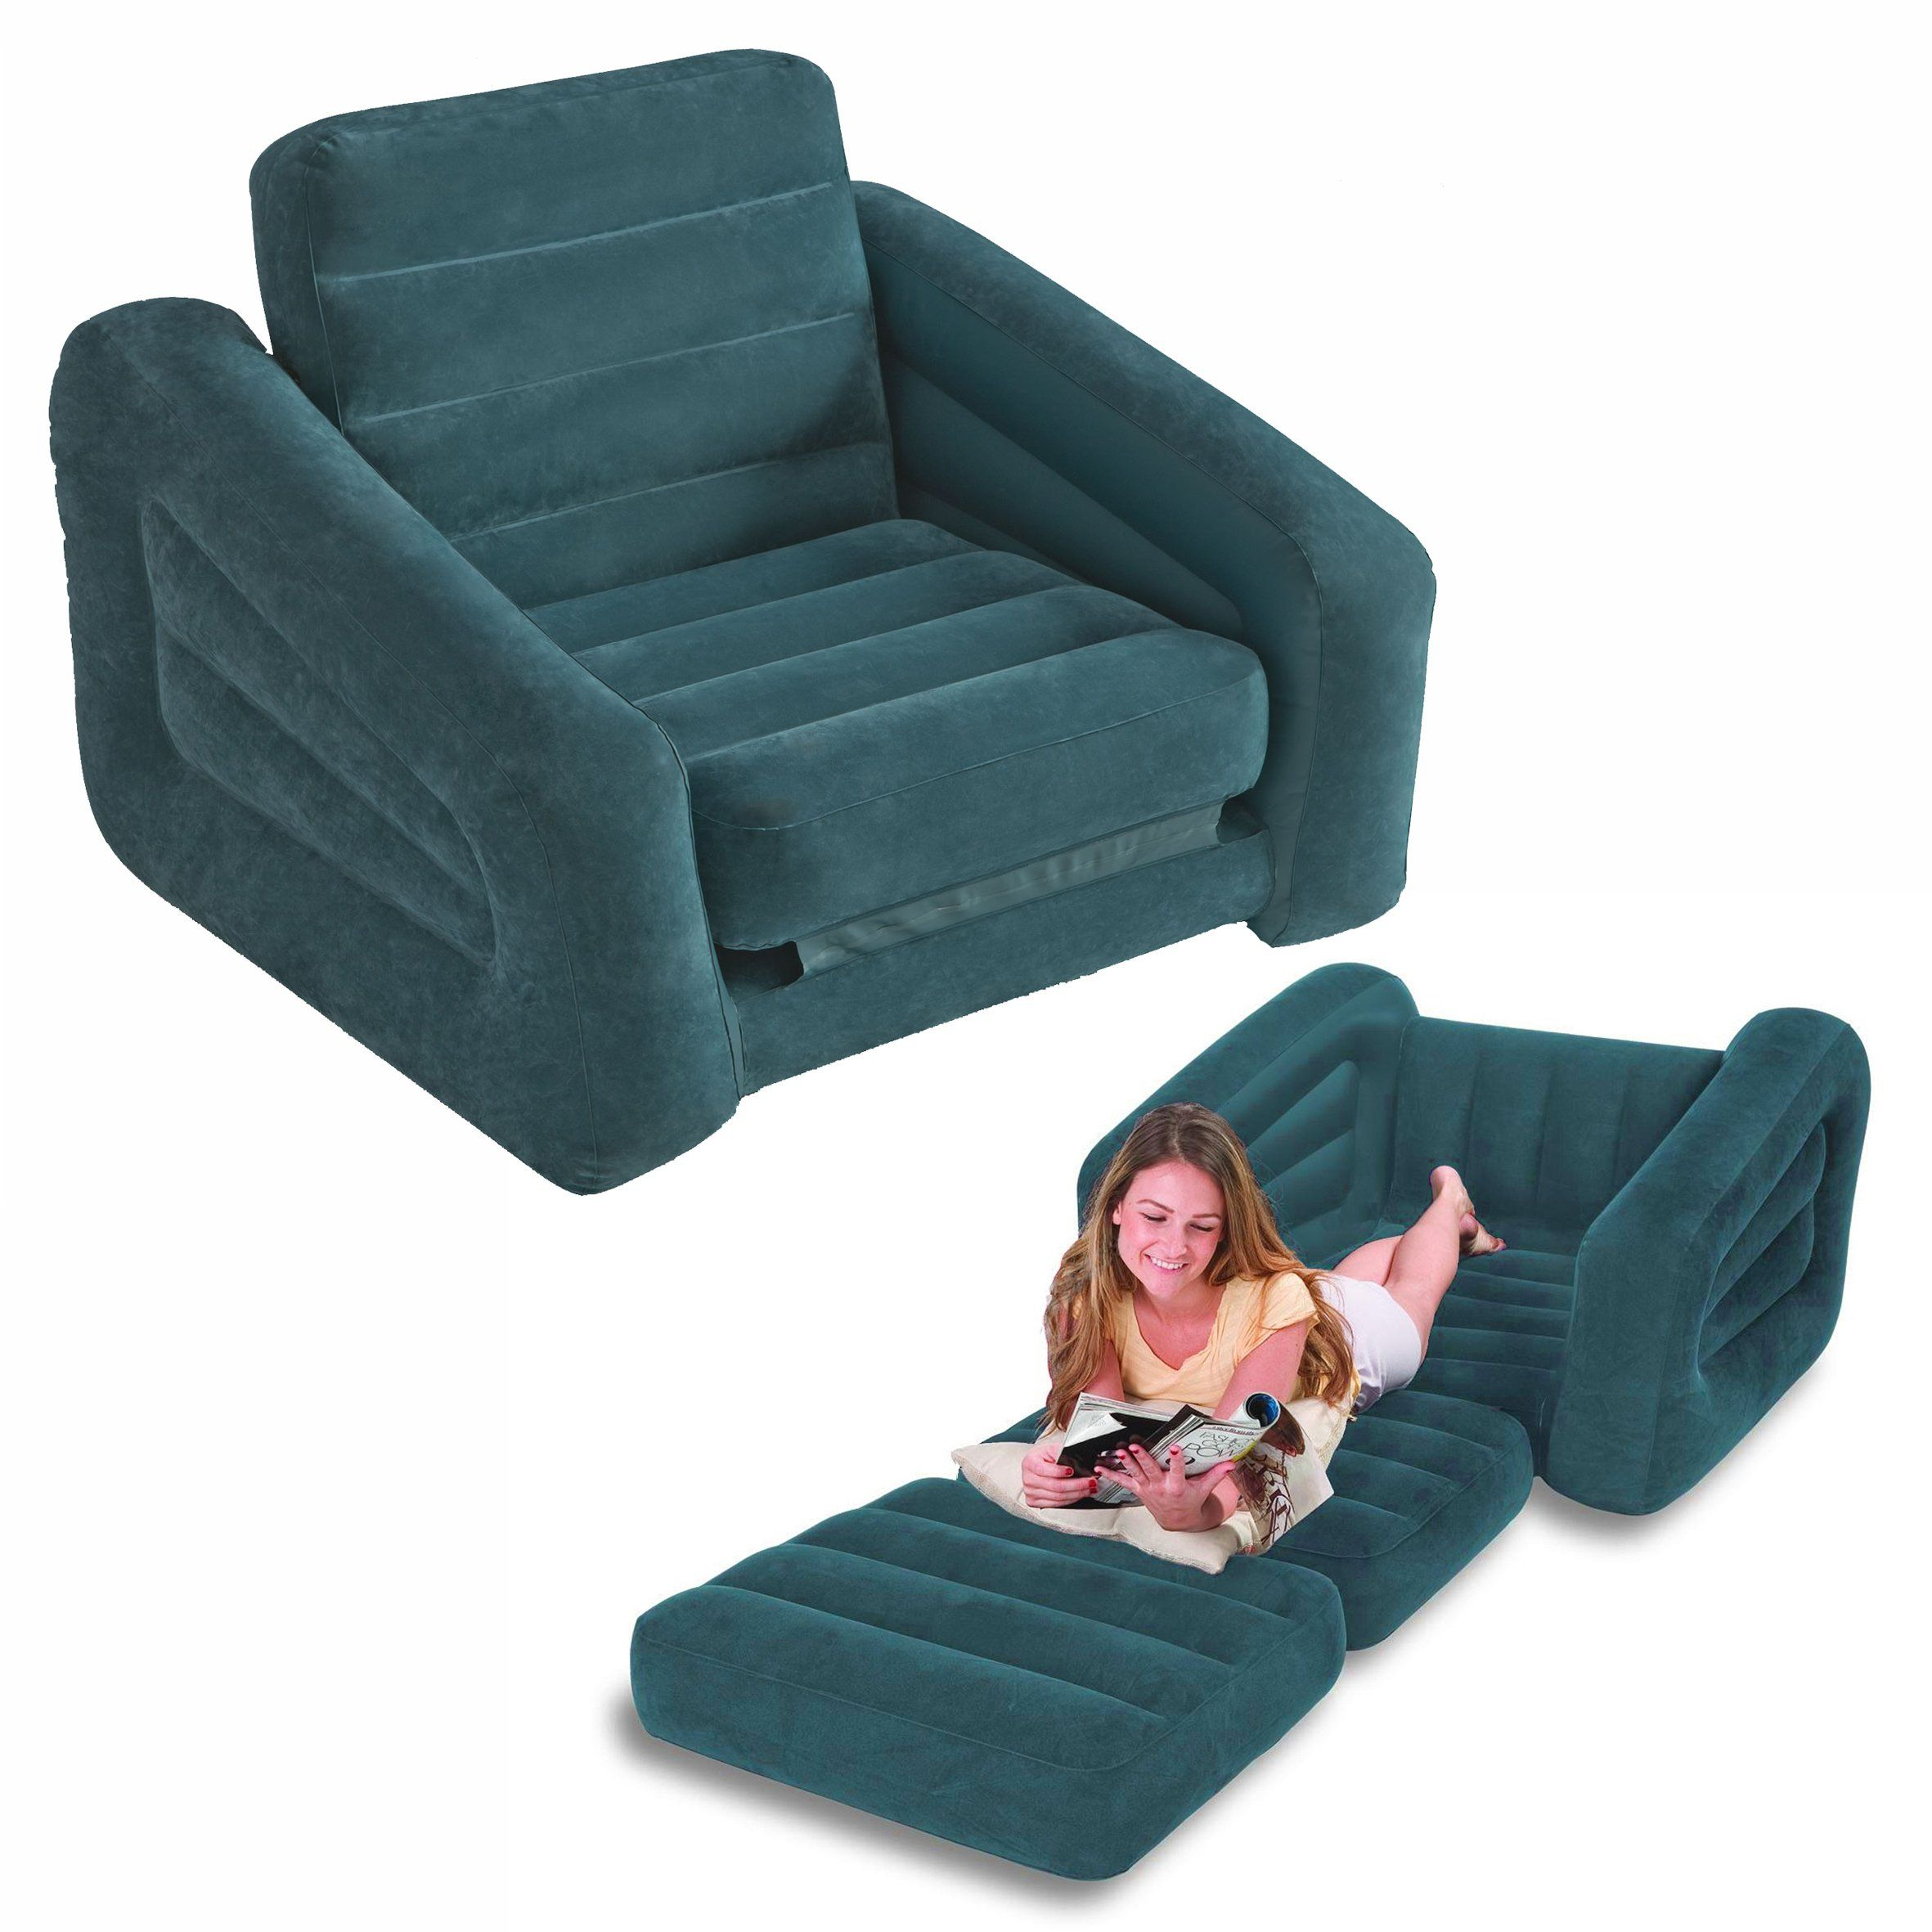 Intex One Person Inflatable Pull Out Chair Bed Sofa bed ...